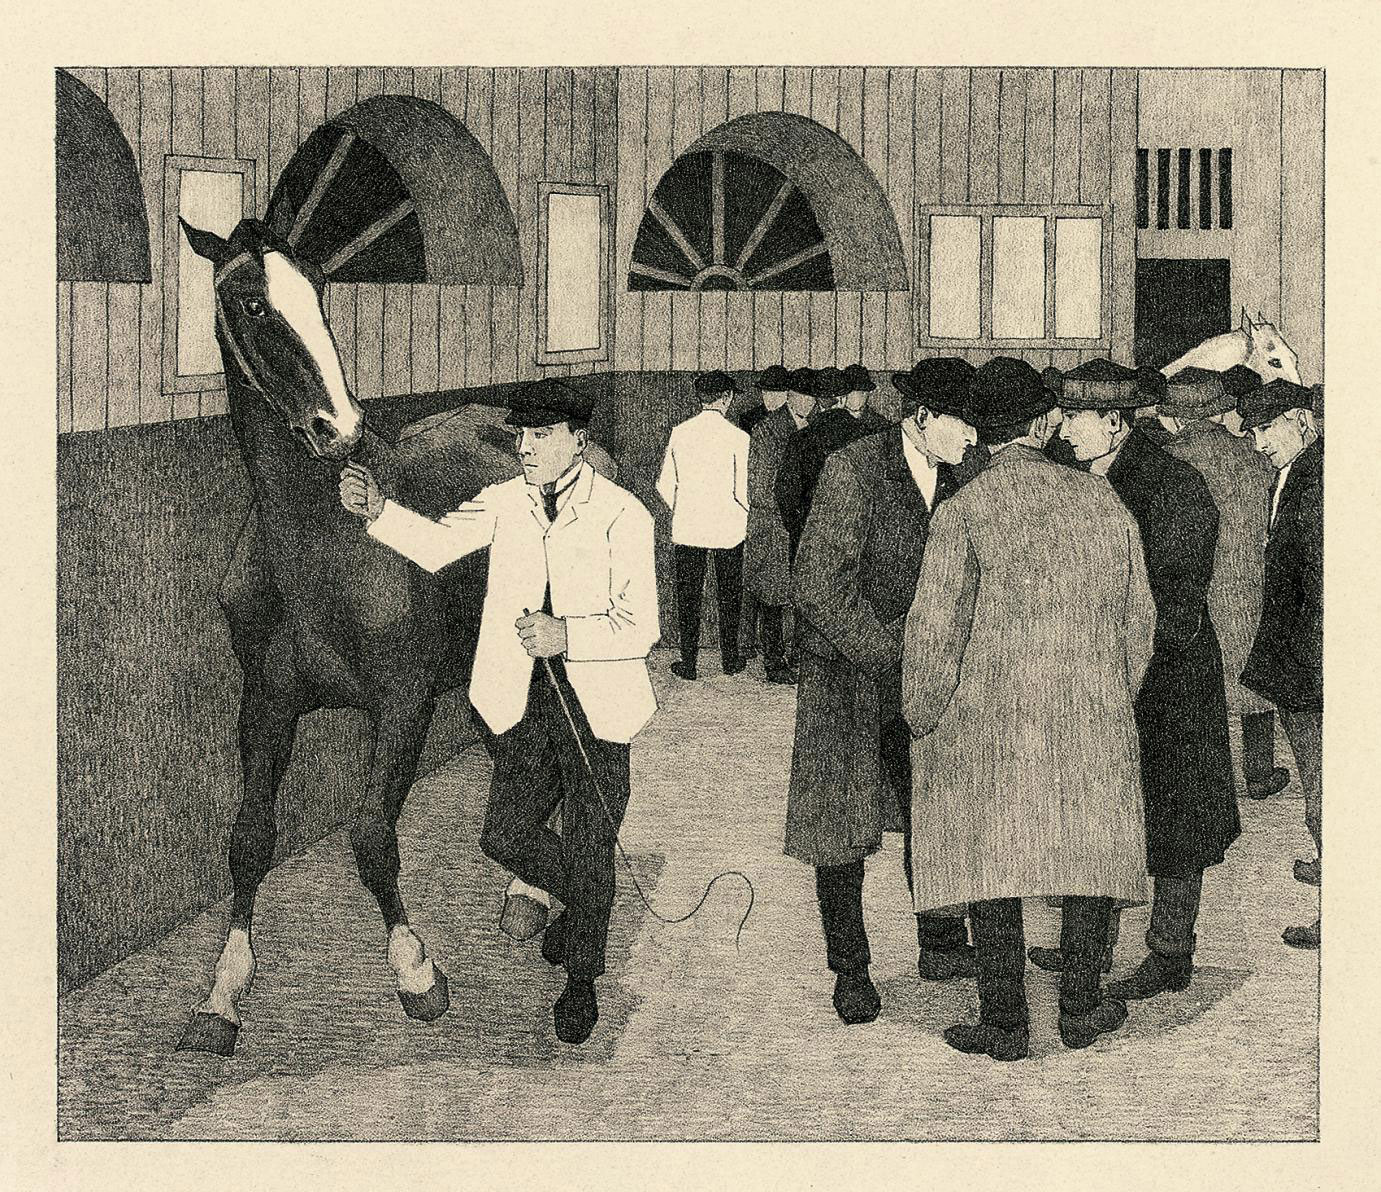 Horse Dealers at the Barbican (Barbican No.2)(Dry 35)